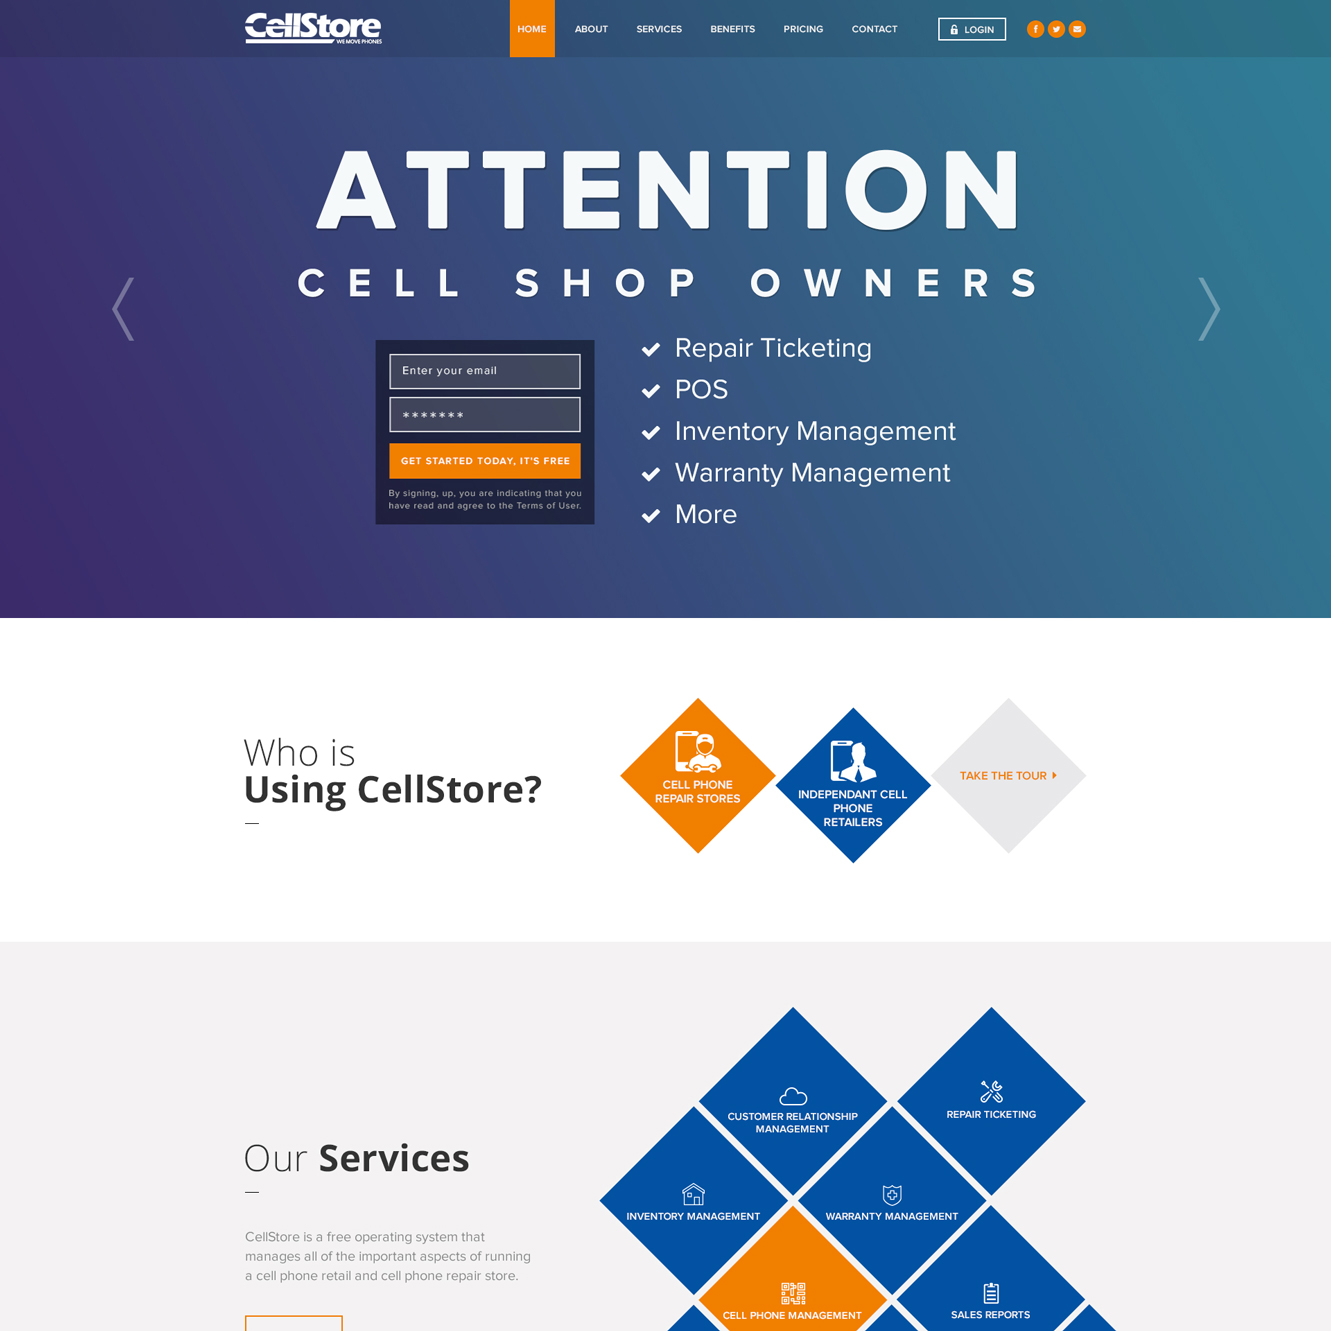 cellstore.co